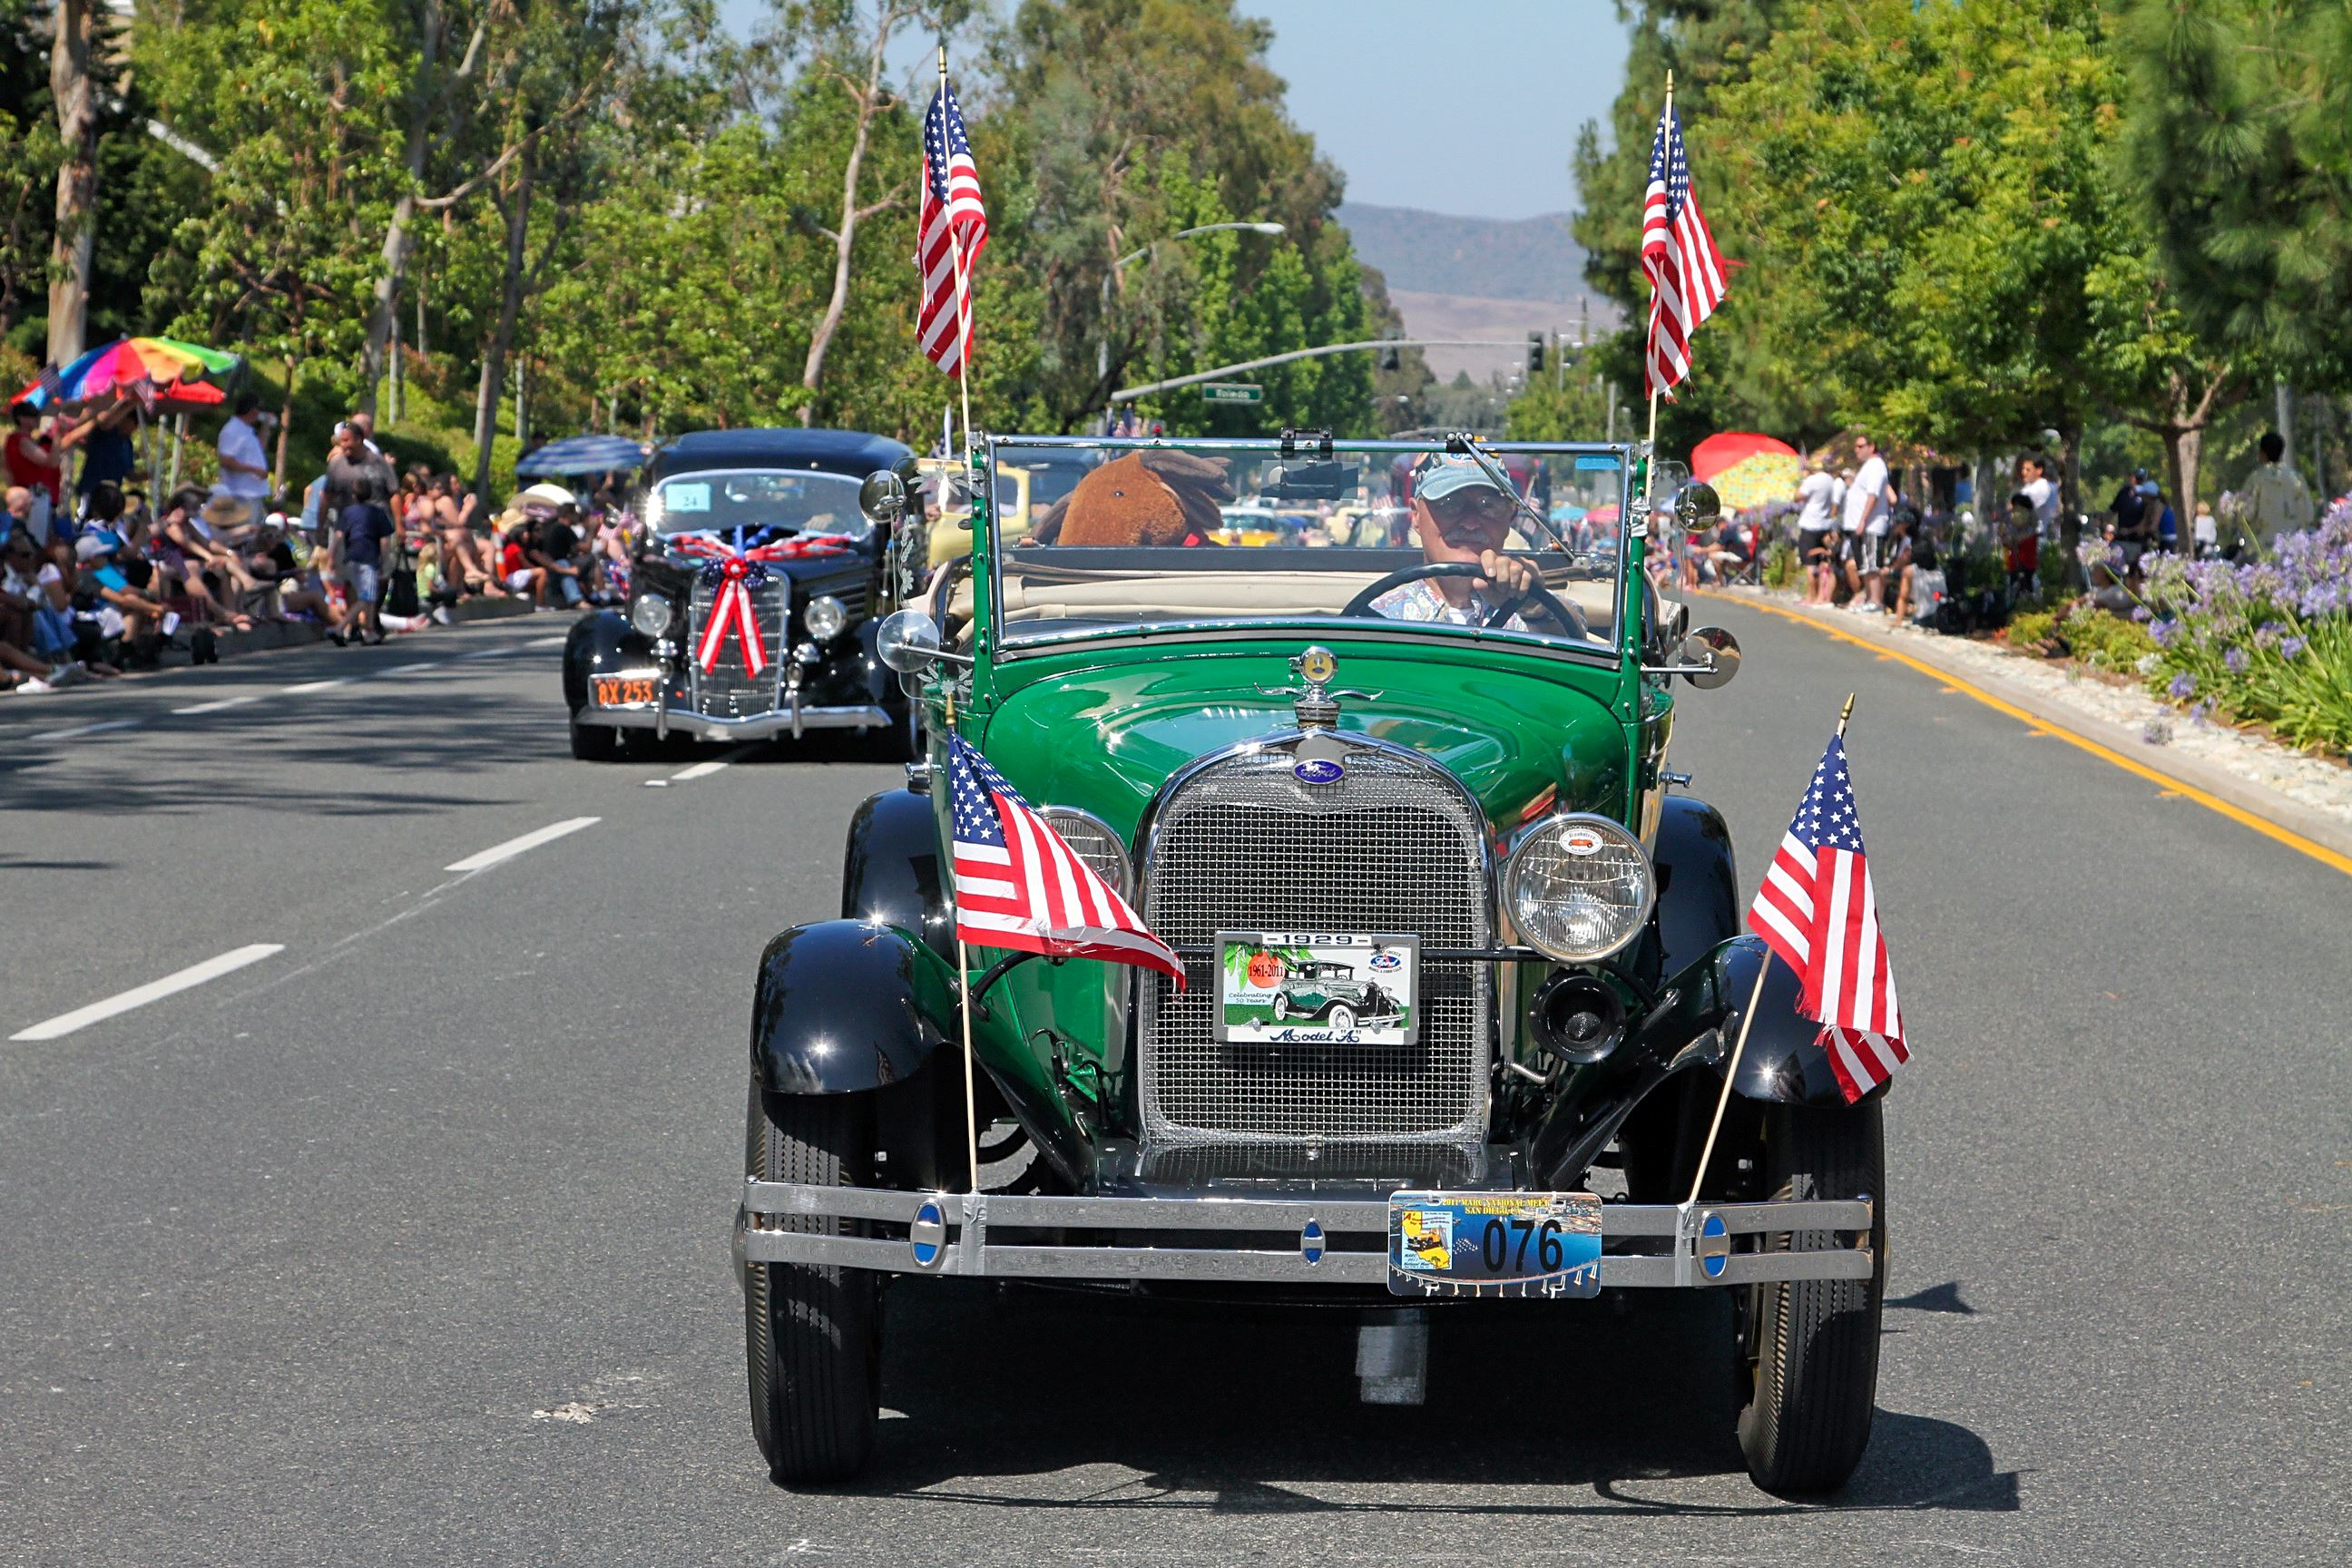 4TH OF JULY PARADE 19